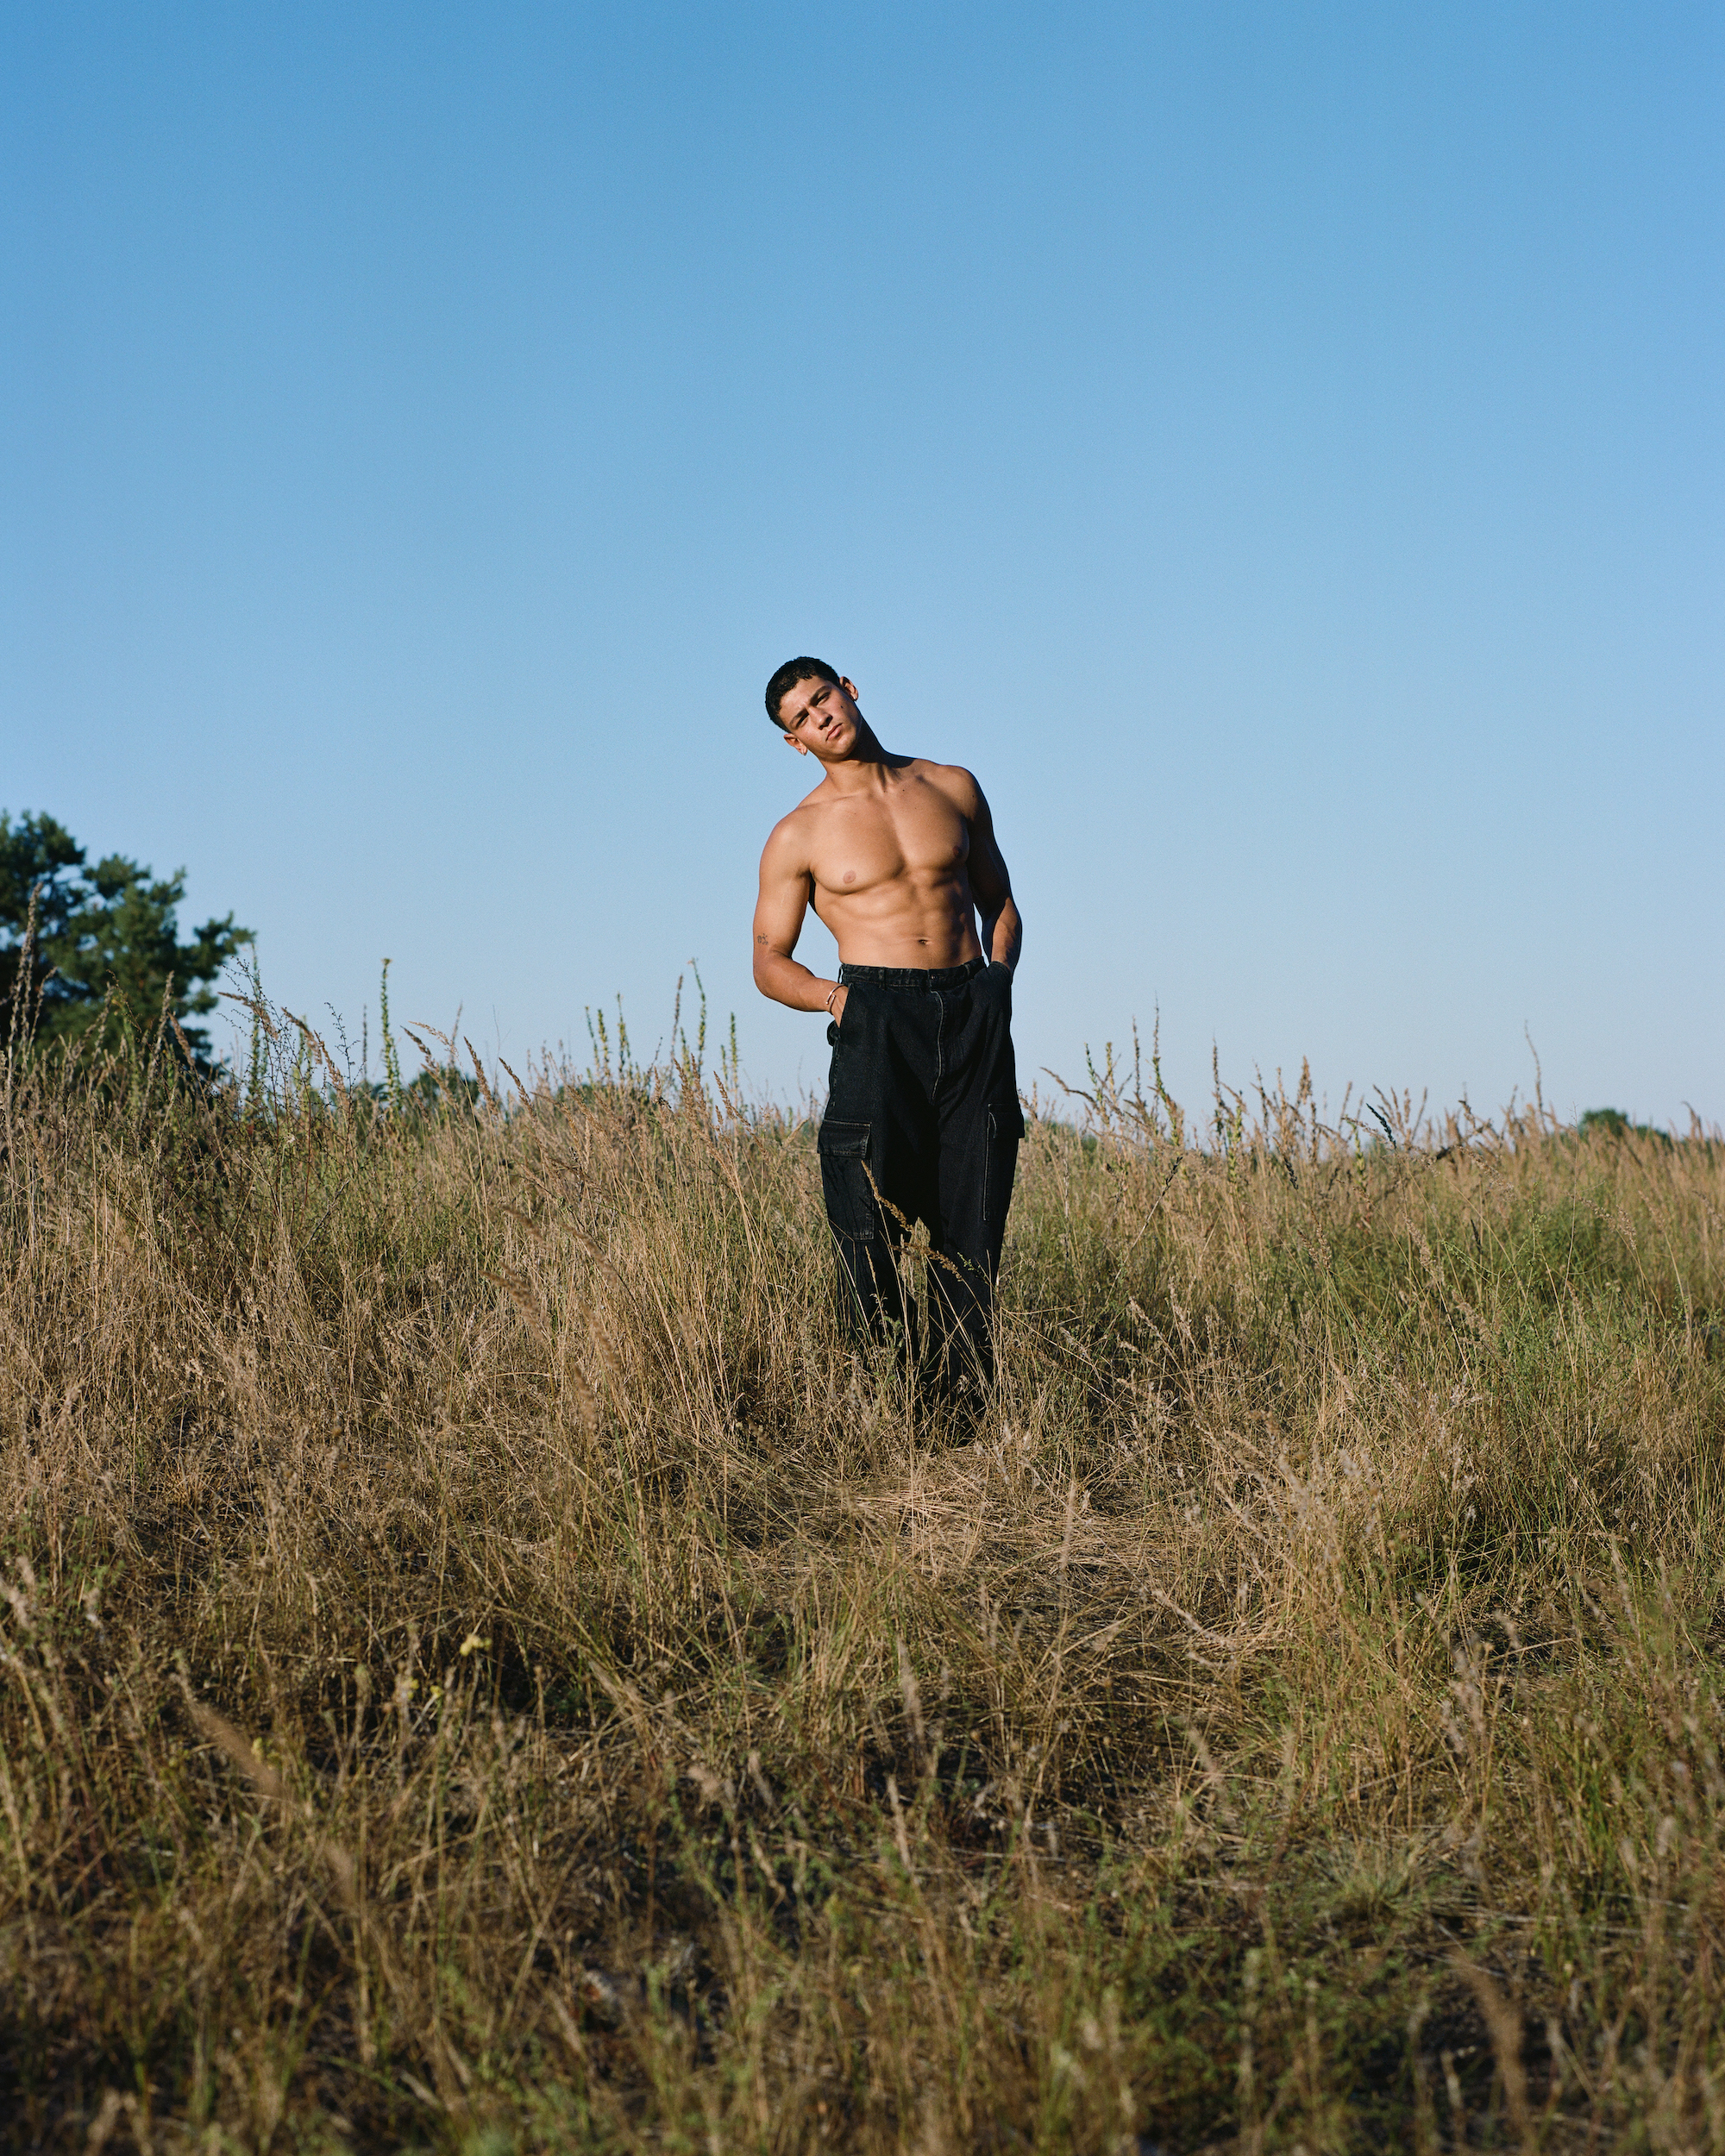 Emilio Sakraya shirtless in black trousers standing in field